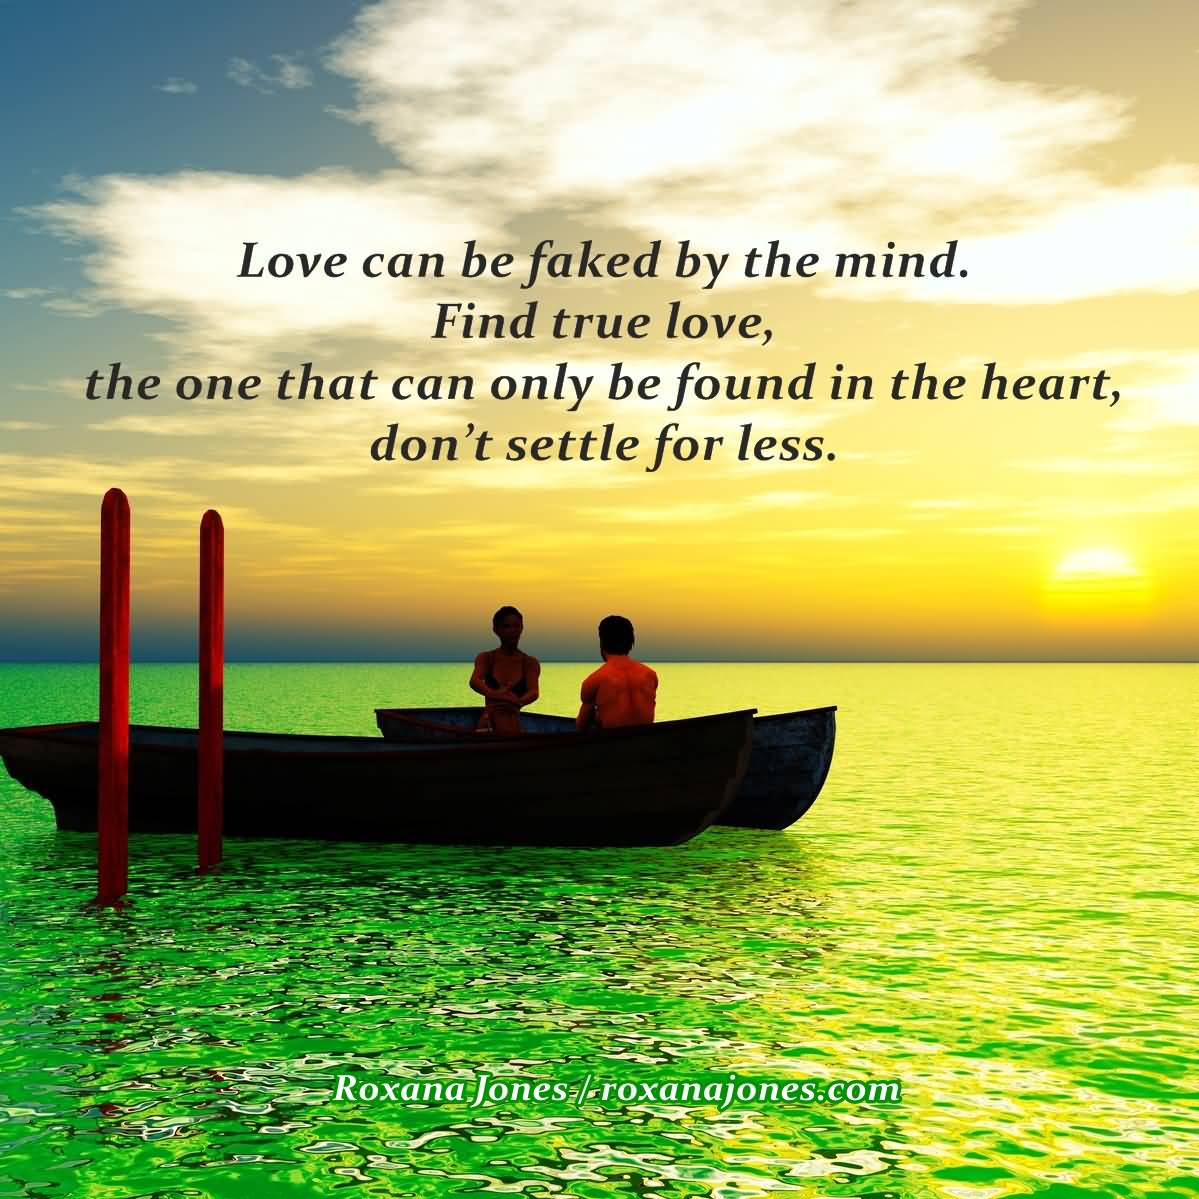 Love Can Be Faked By The Mind Find True Love The One That Can Only Be Found In The Heart Dont Settle For Less